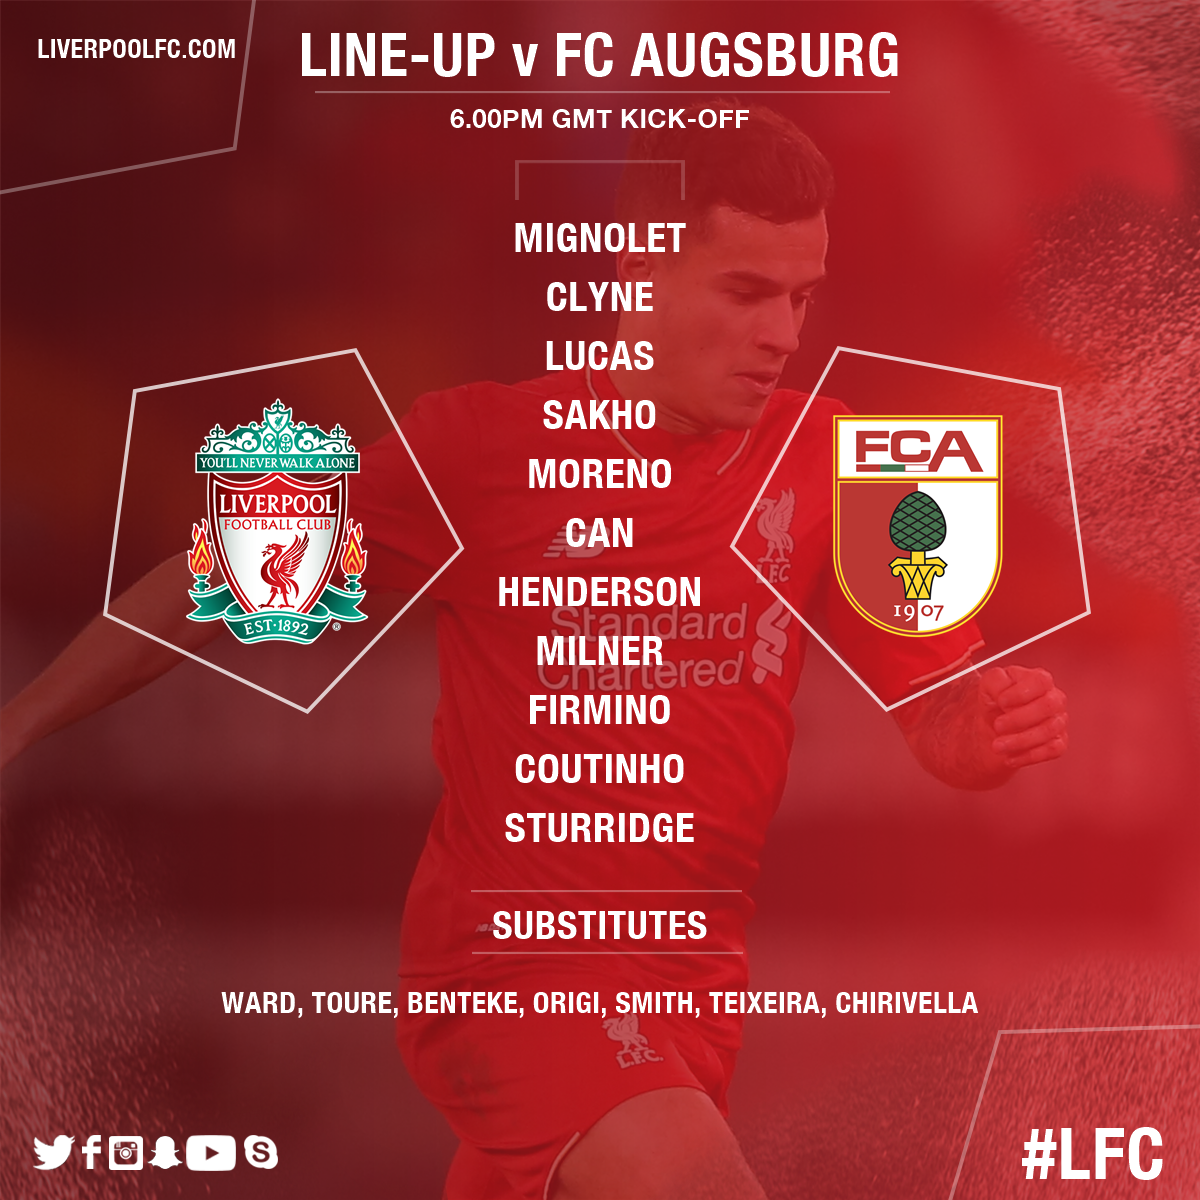 Liverpool vs Augsburg  CcExfkIW0AACdGL